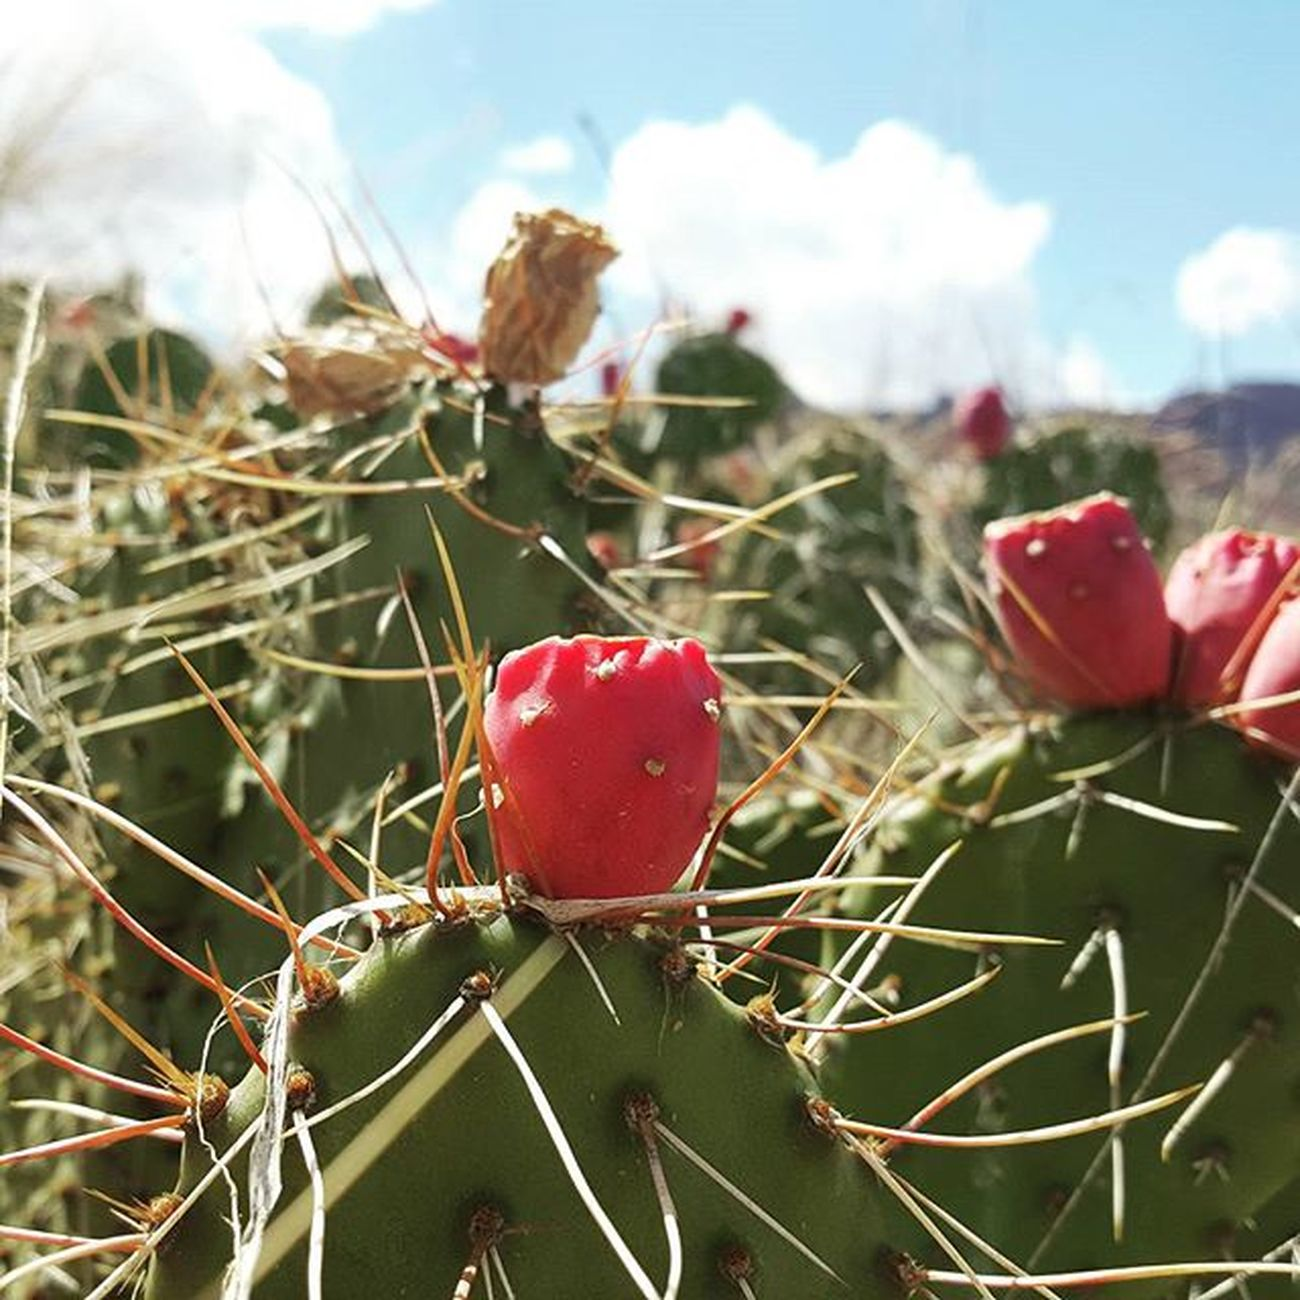 Cactusflower Cactus Frisbeegolf in Moab  Cool Pink Green Sharp Thorns